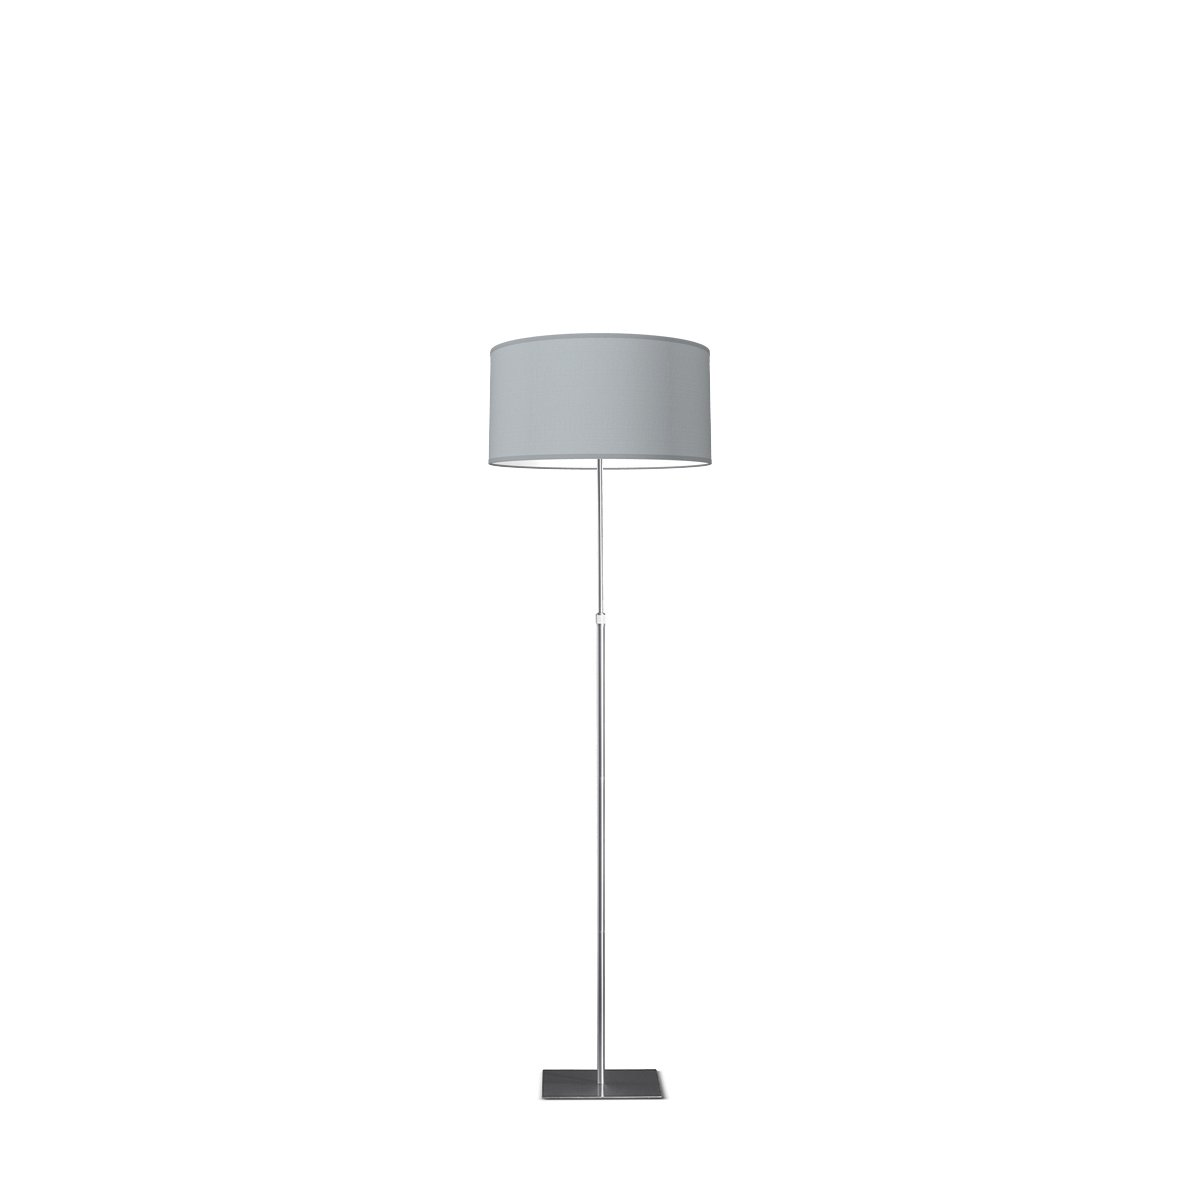 HOME SWEET HOME vloerlamp bobo bling Ø 45 cm - Light grey